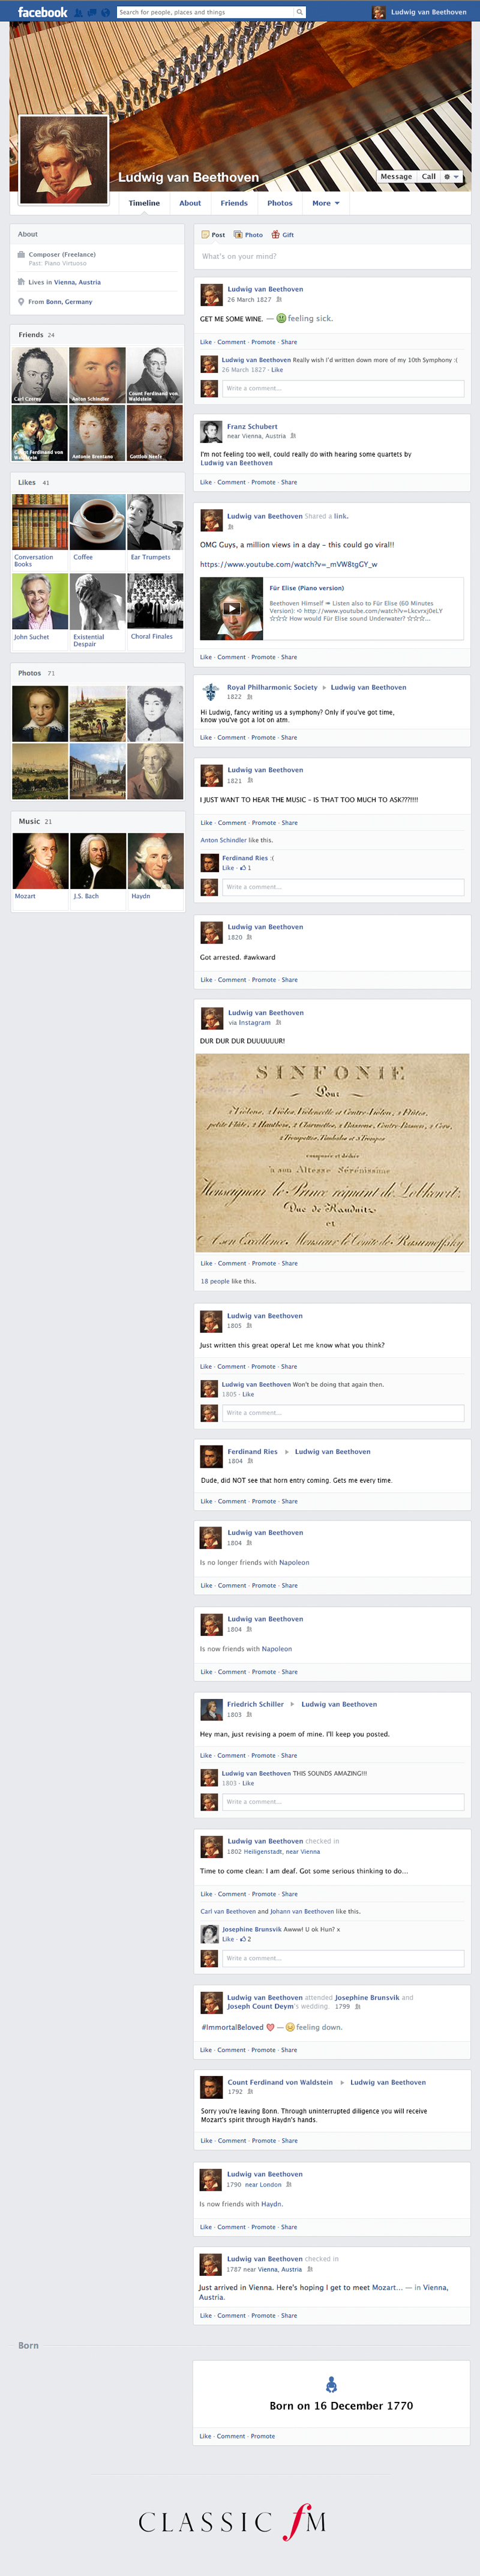 Beethoven facebook profile